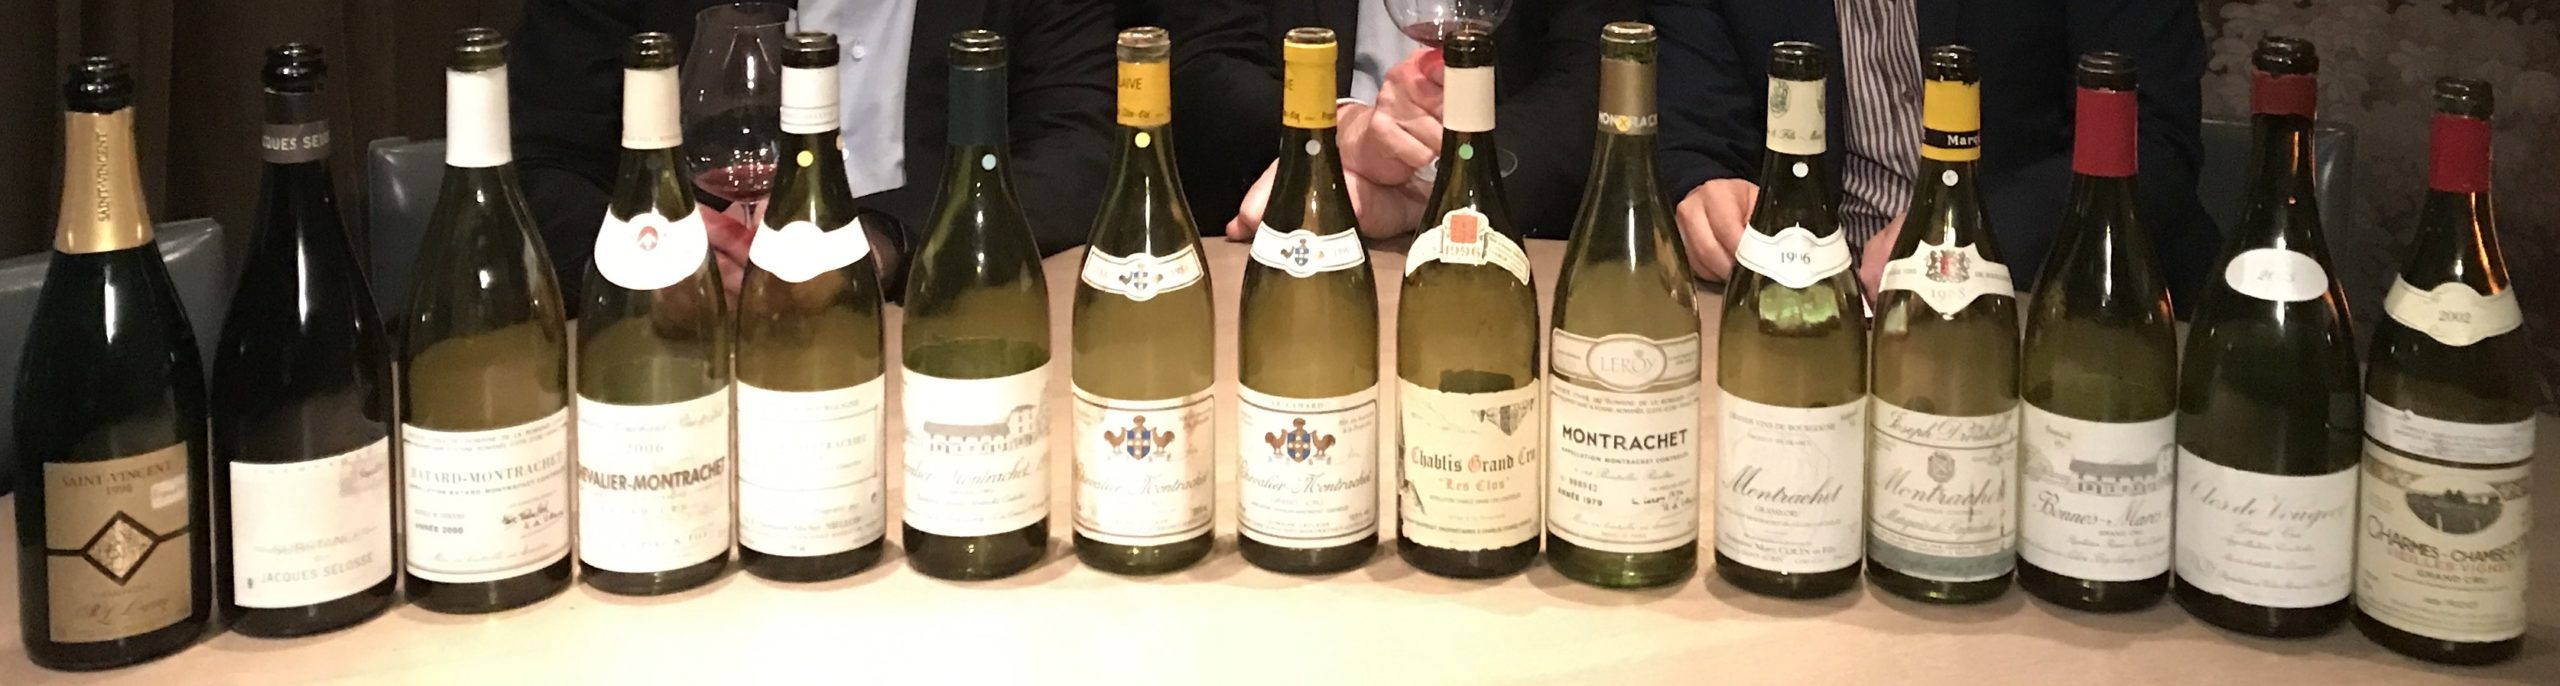 Chevalier-Montrachet and Le Montrachet: White Burgundy at its Very Finest